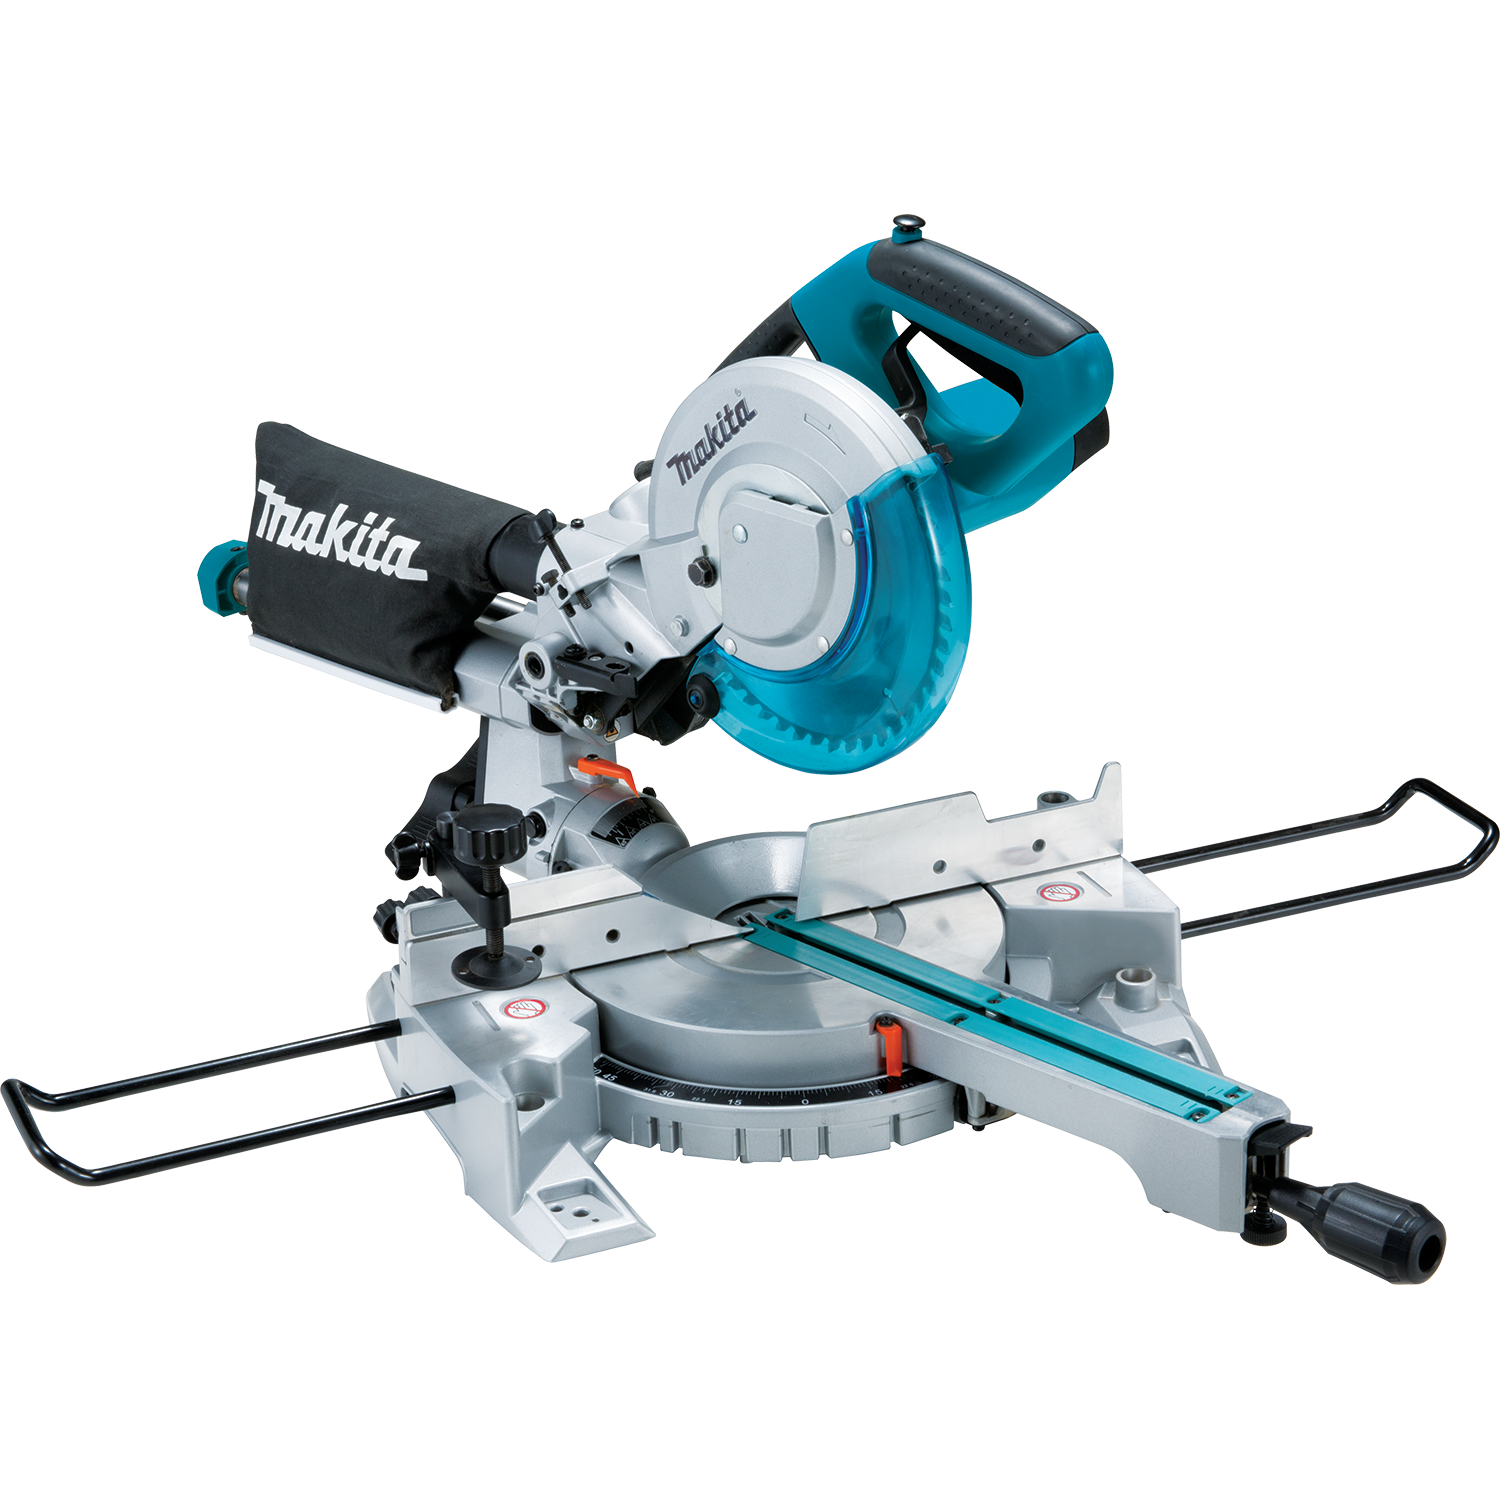 Makita usa product details ls0815f ls0815f greentooth Images